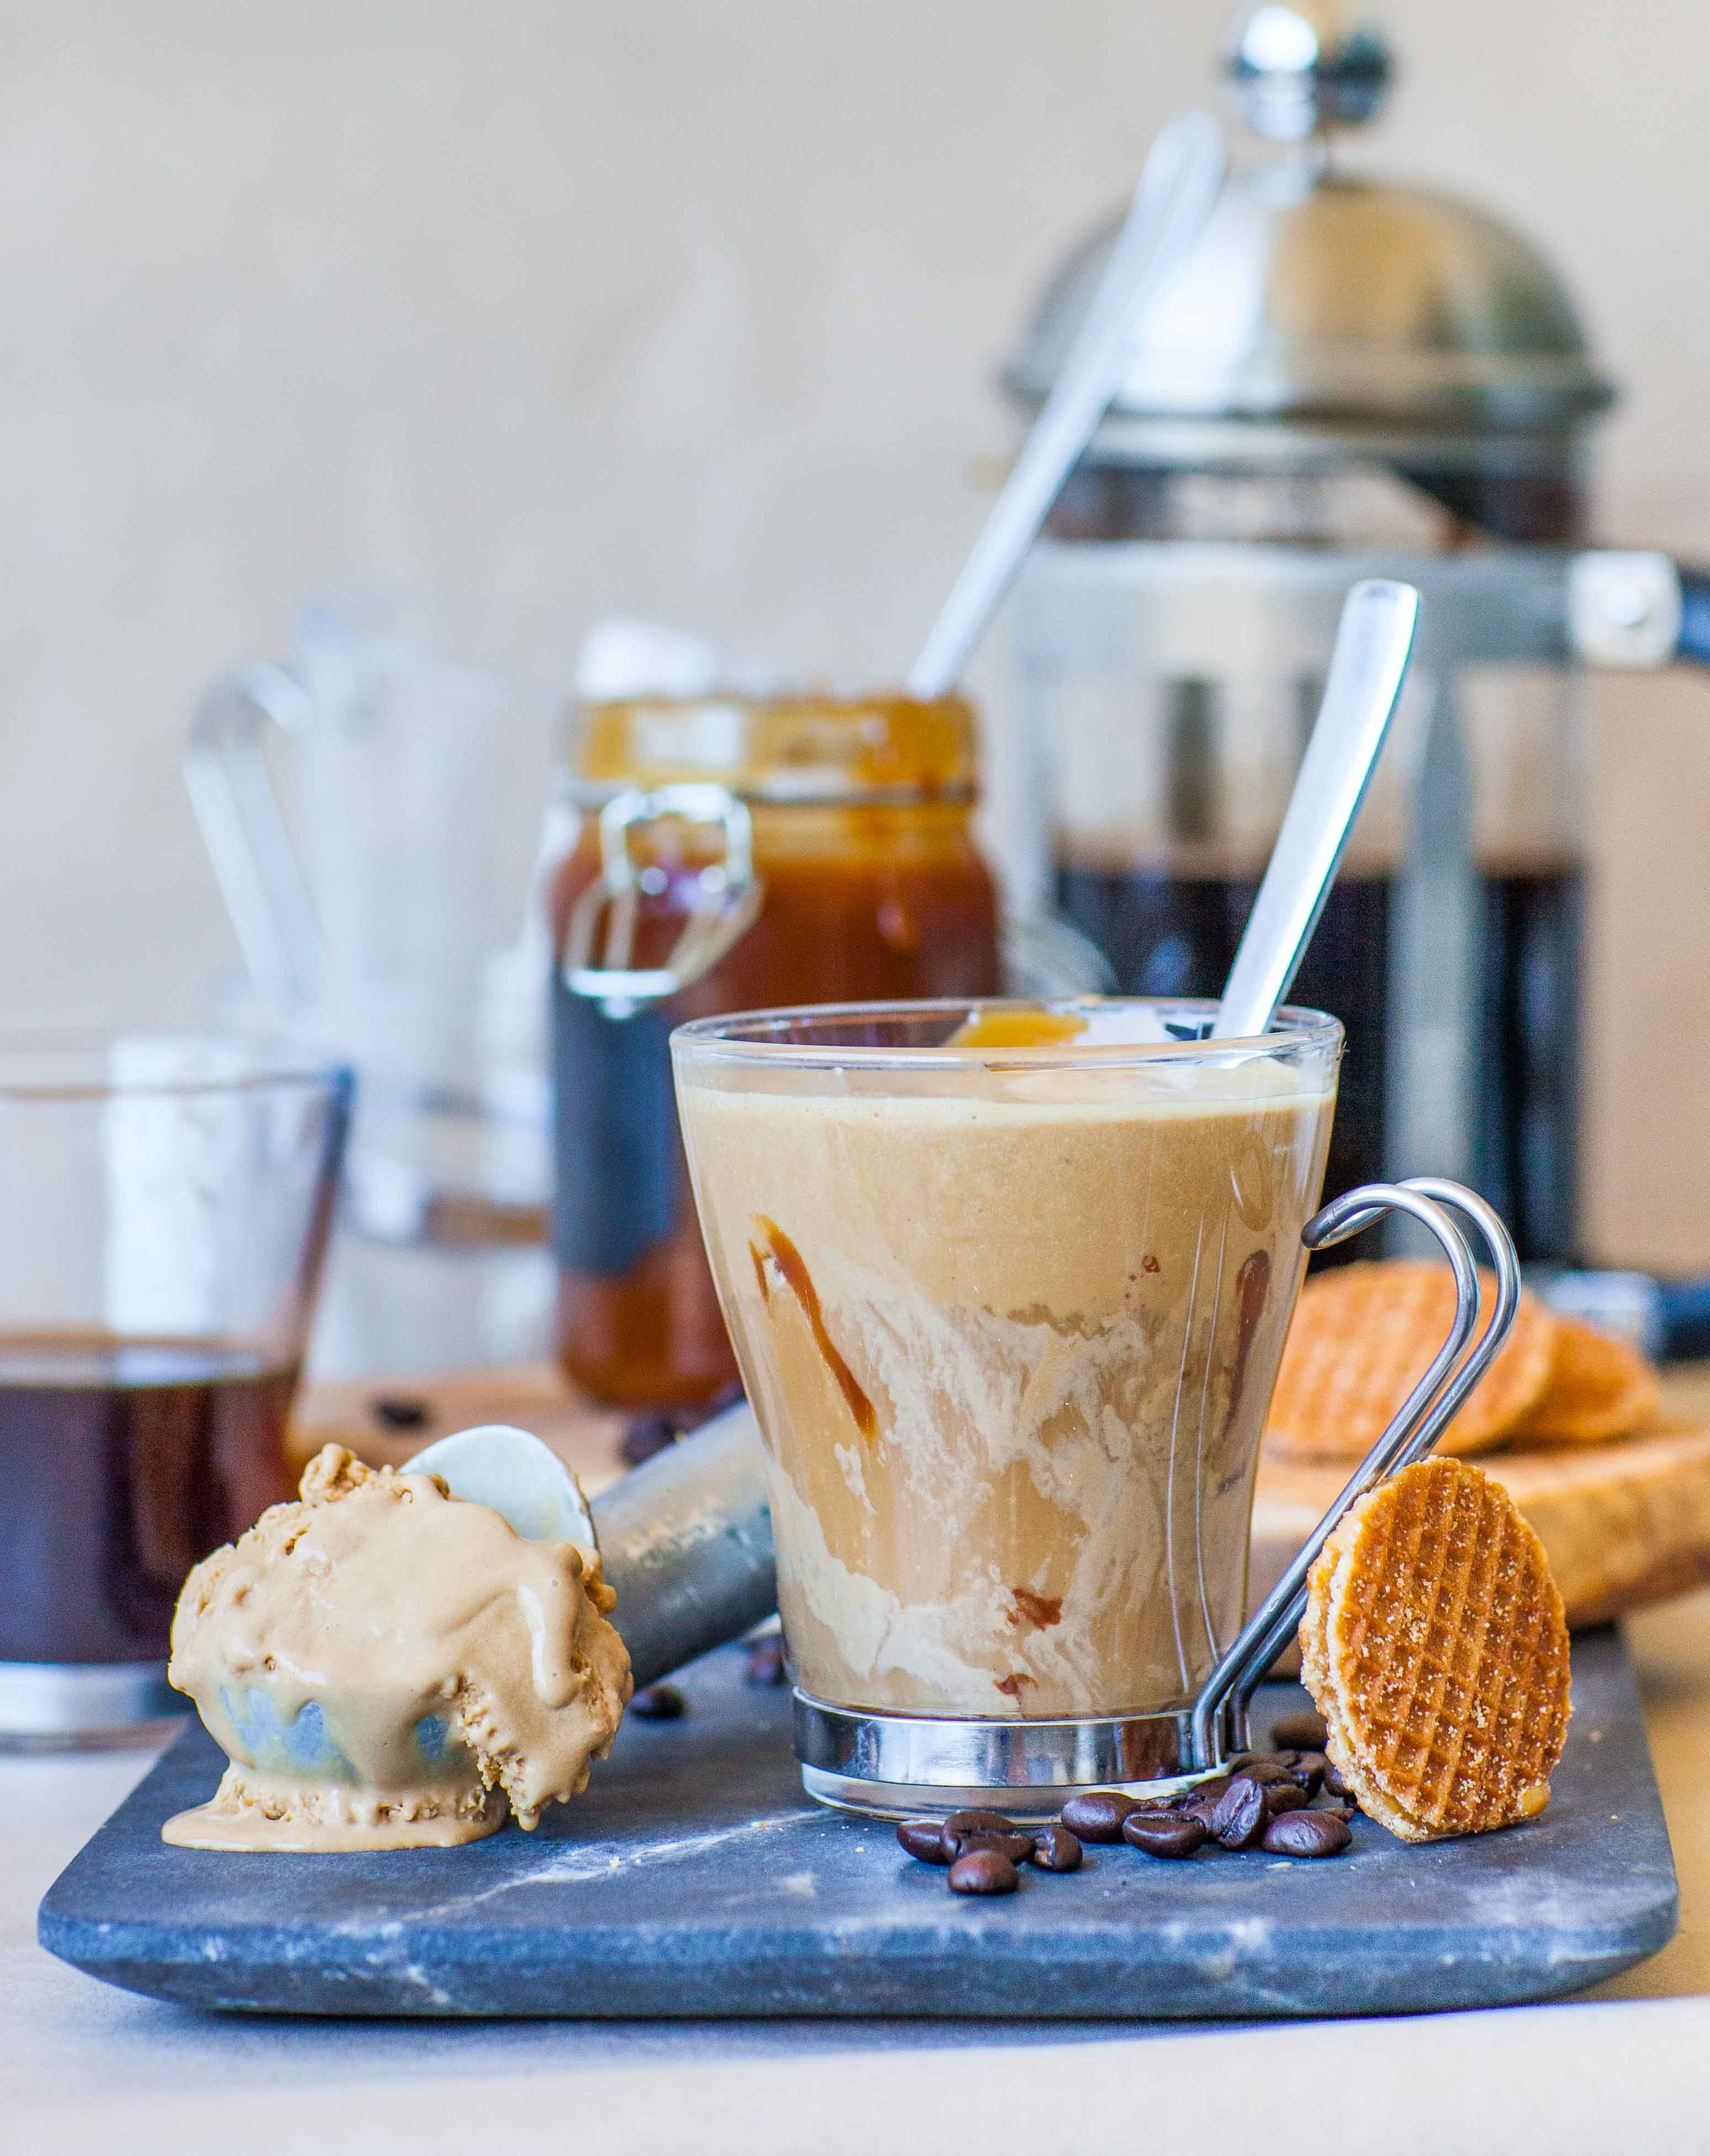 Affogato – Coffee Ice Cream Dessert